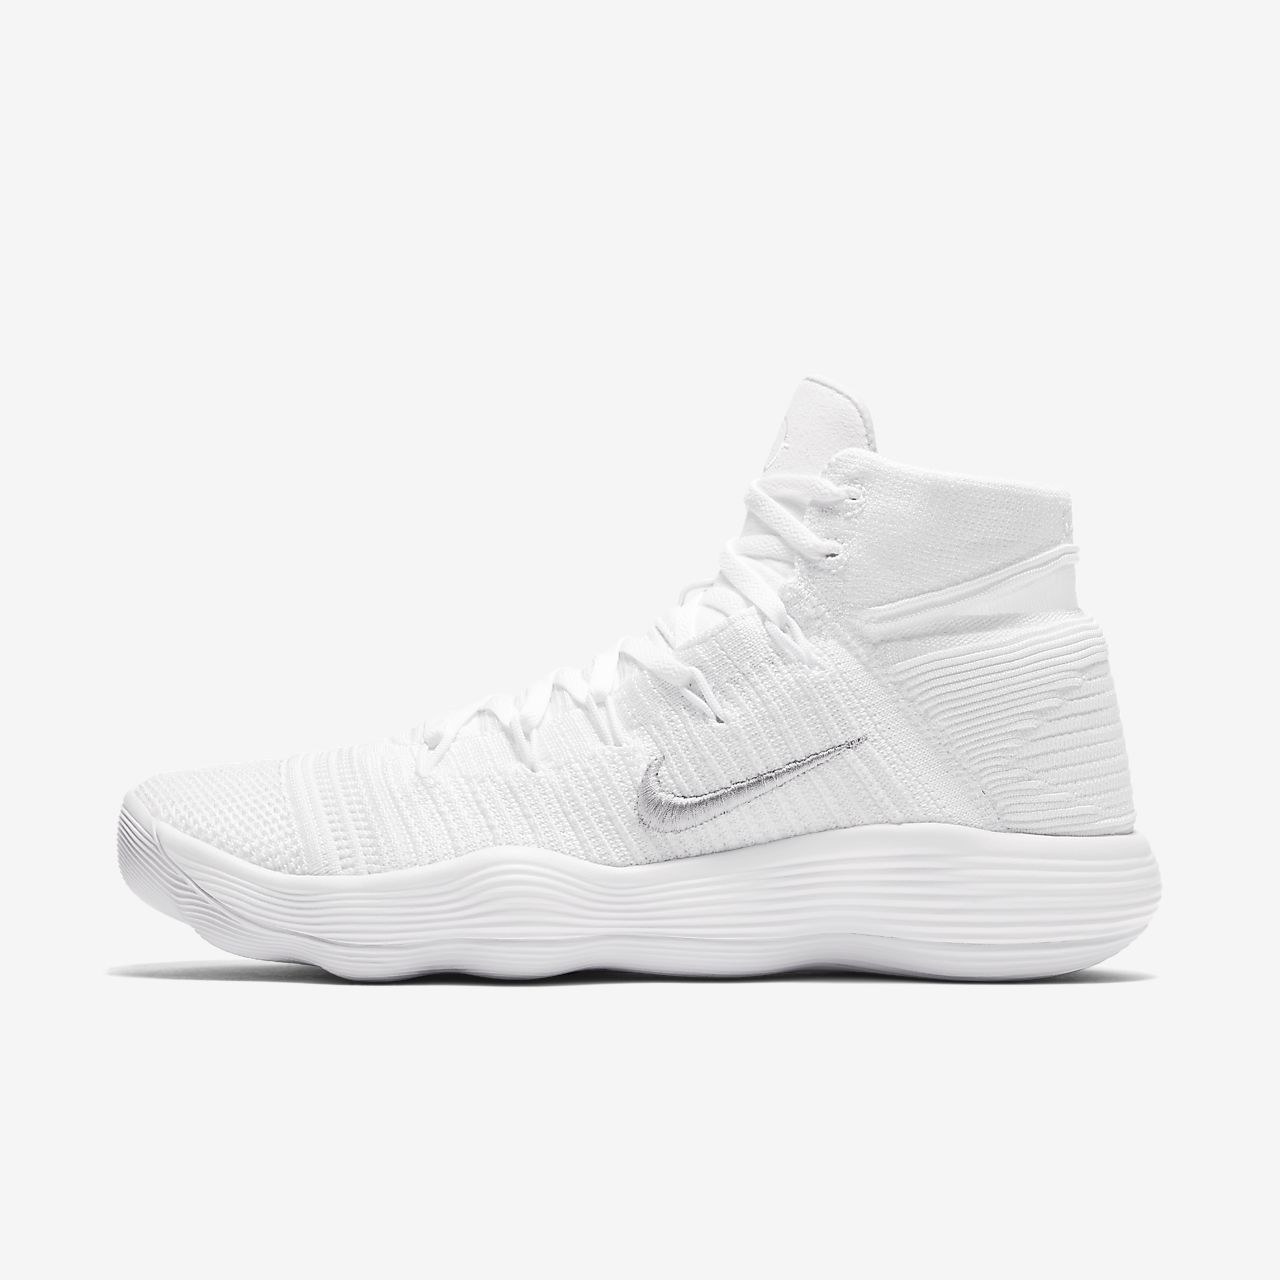 nike hyperize basketball shoes red flyknit